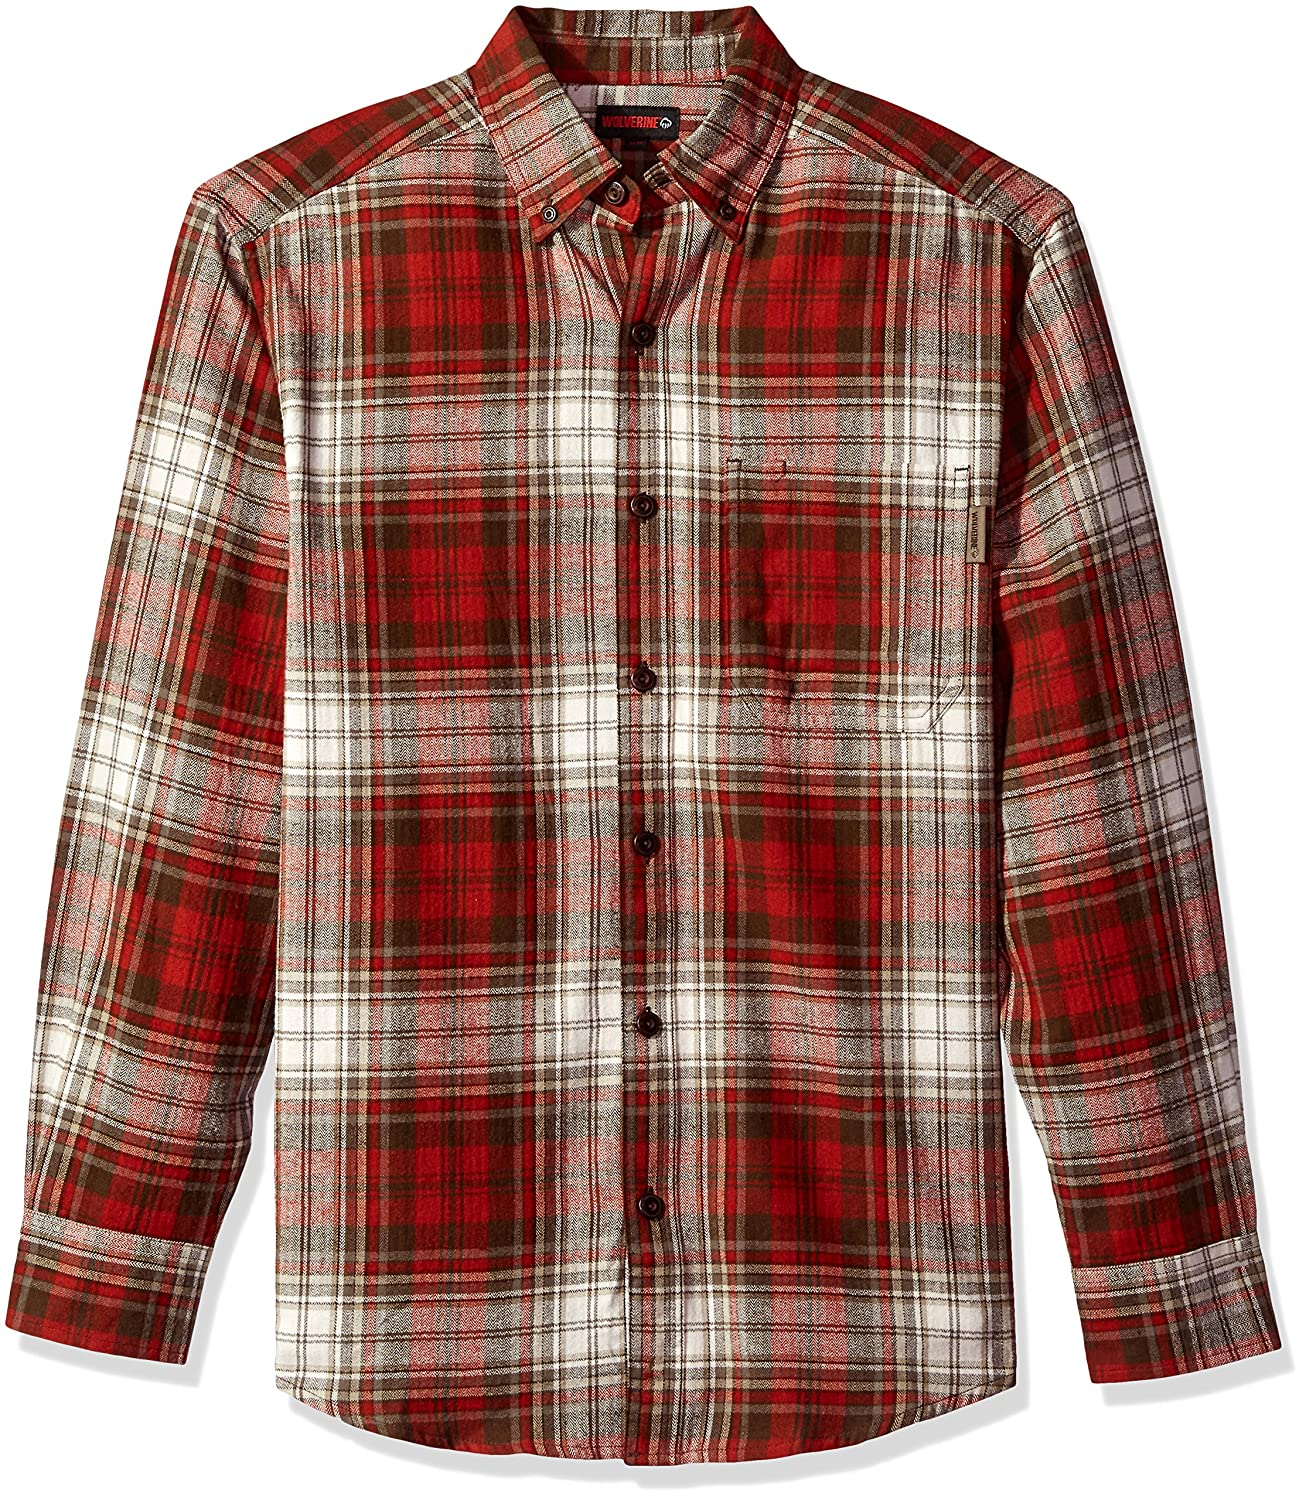 Wolverine メンズ Rogan フランネルシャツ 長袖 B072W6XQXW X-Large|Spice Plaid Spice Plaid X-Large